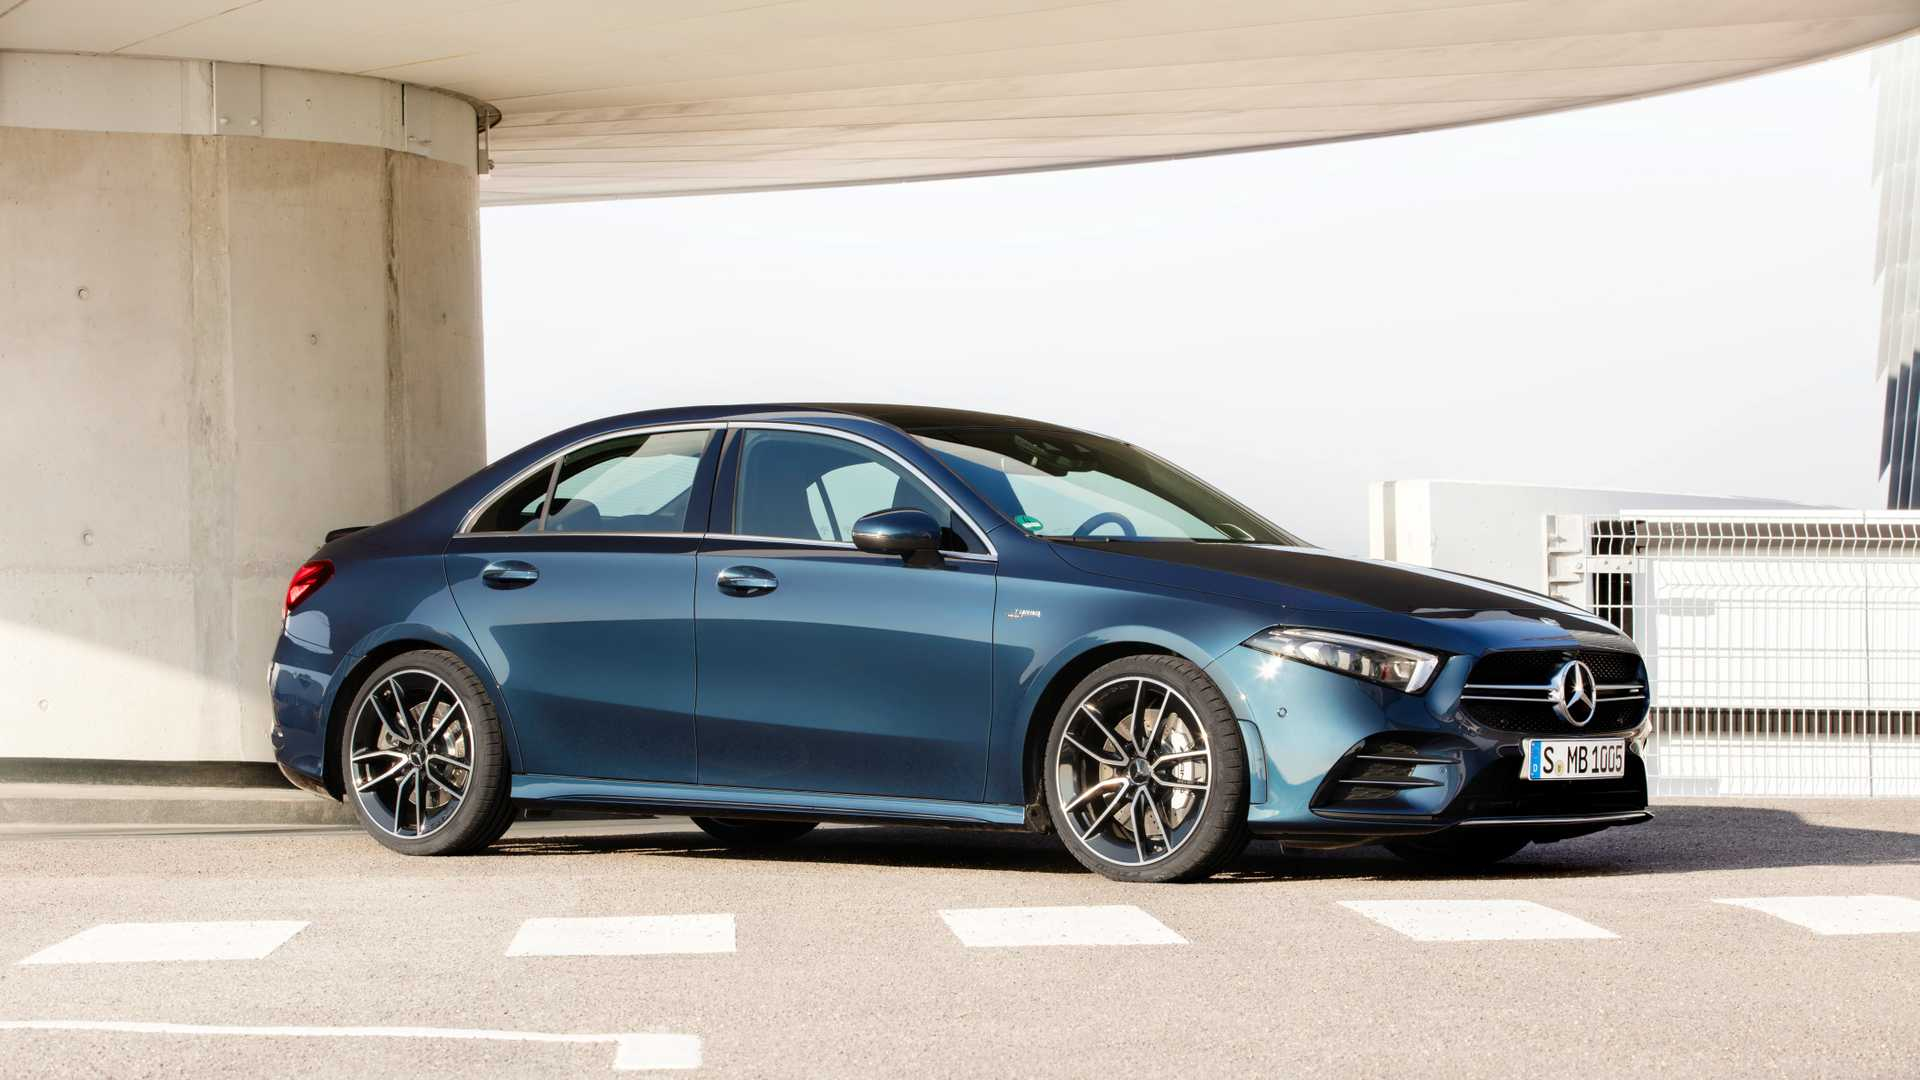 Mercedes-AMG A 35 arrives with over 300 horsepower